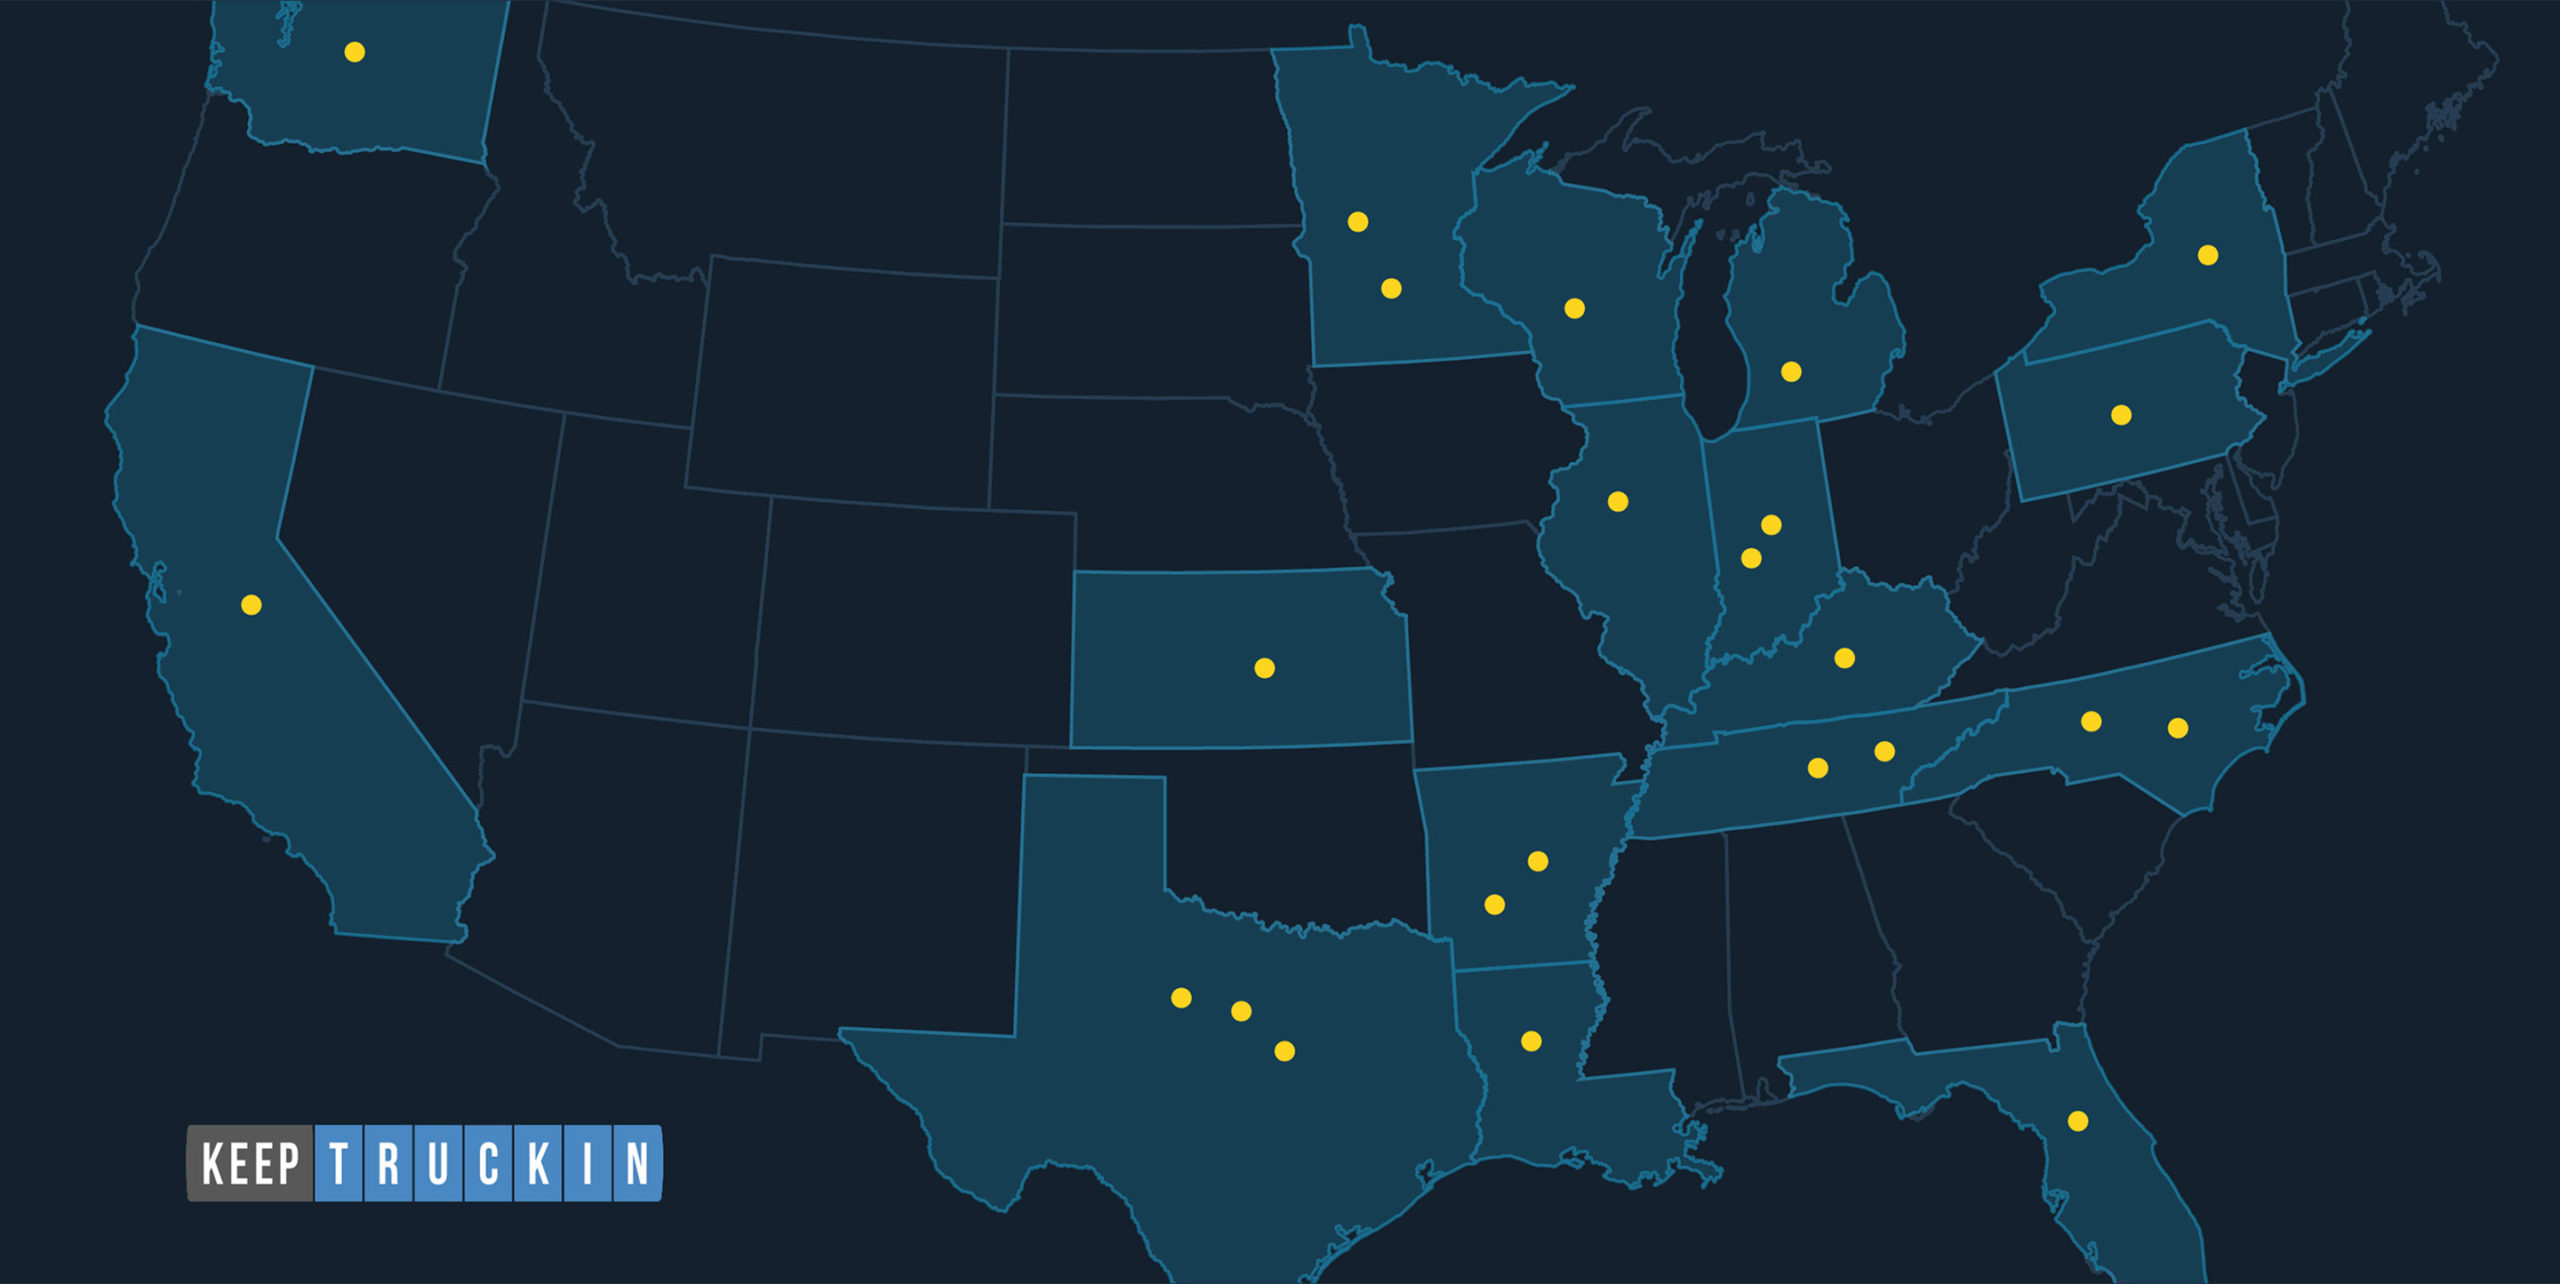 24 U.S. cities with the worst average detention time